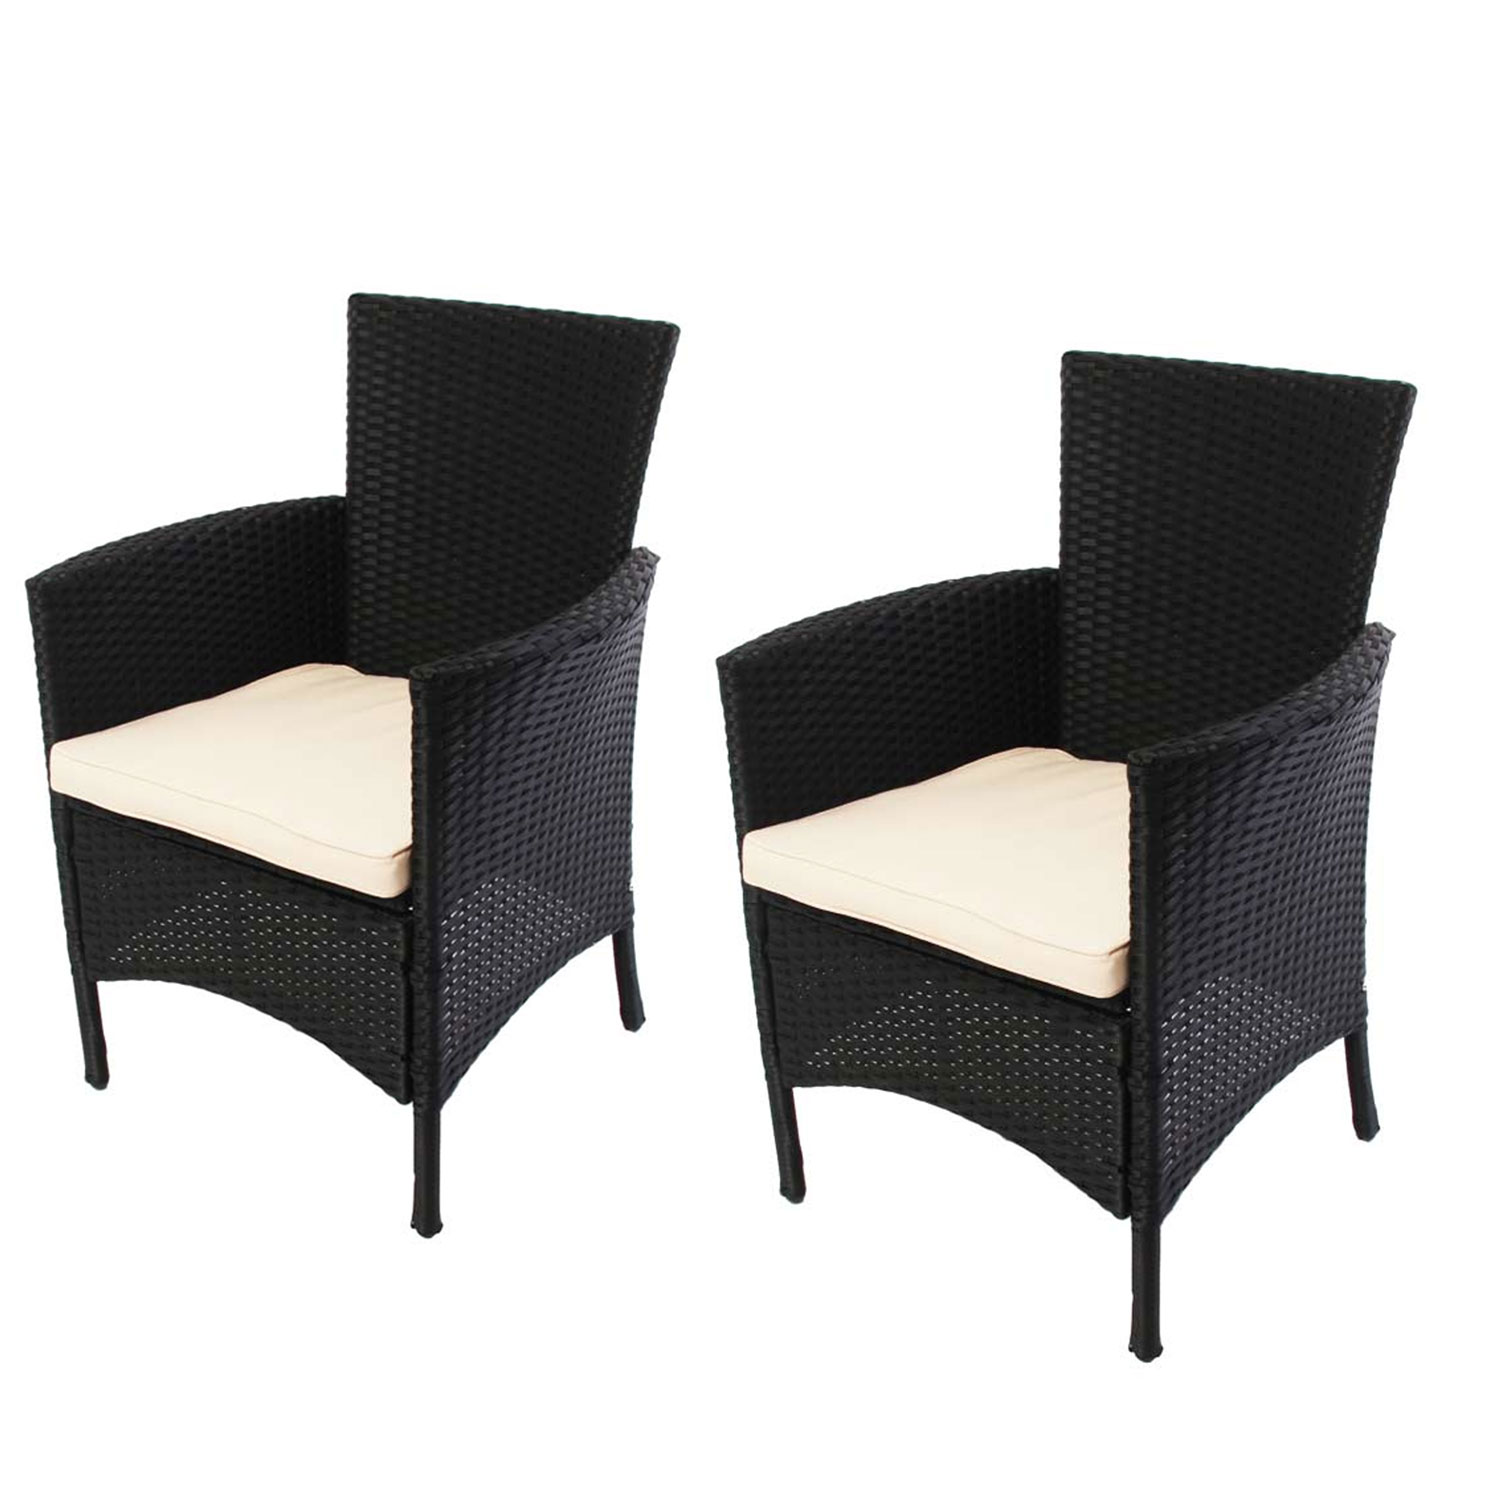 2x rattan gartensessel korbsessel romv anthrazit. Black Bedroom Furniture Sets. Home Design Ideas